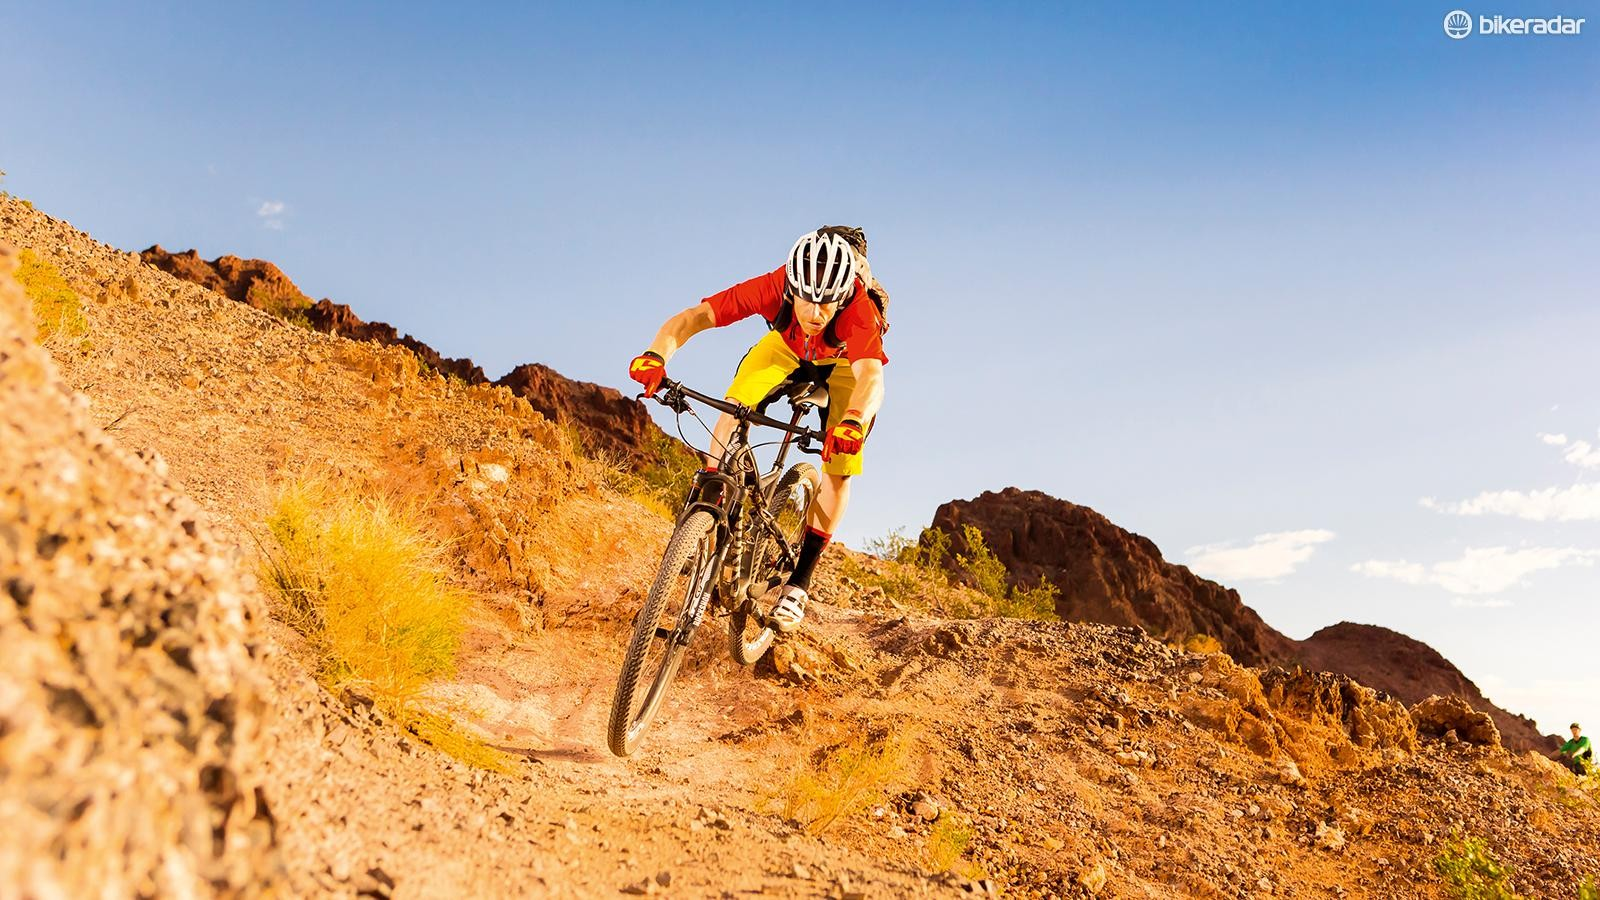 It's great to remember how much of an adrenalin rush a steep angled, snap handling XC machine can inject into your riding